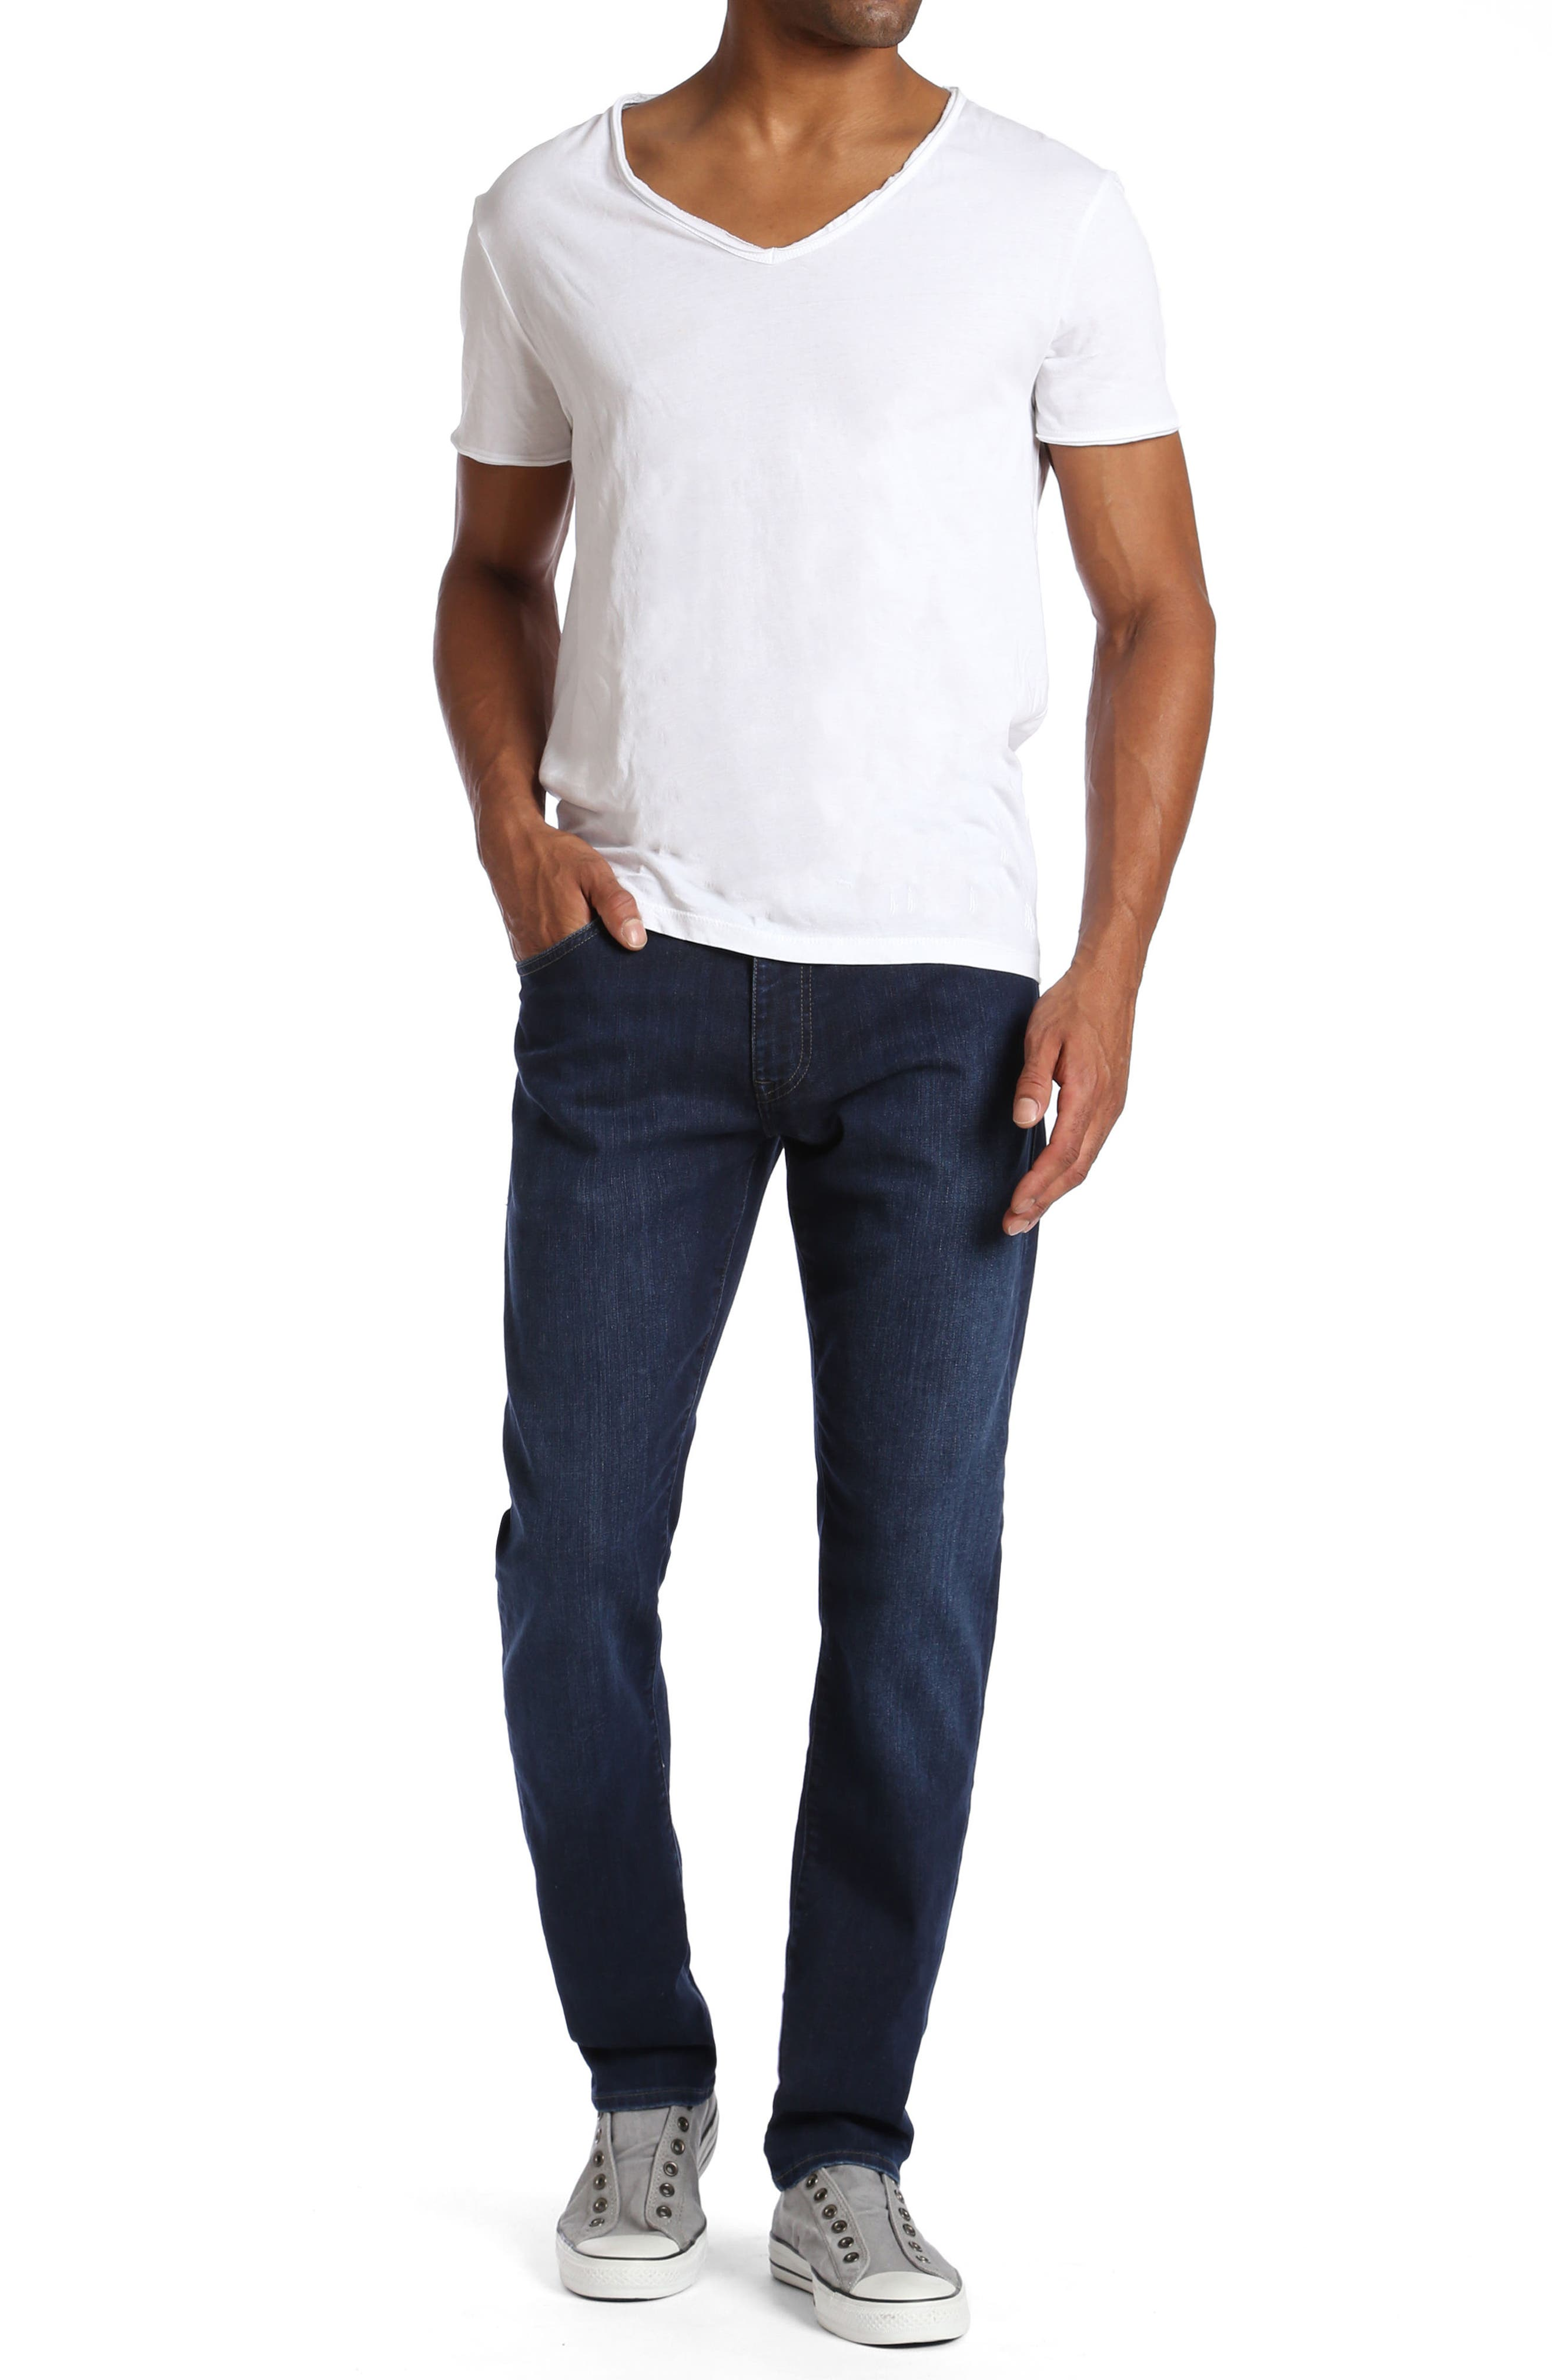 Zach Straight Fit Jeans,                             Alternate thumbnail 4, color,                             Deep Clean Comfort